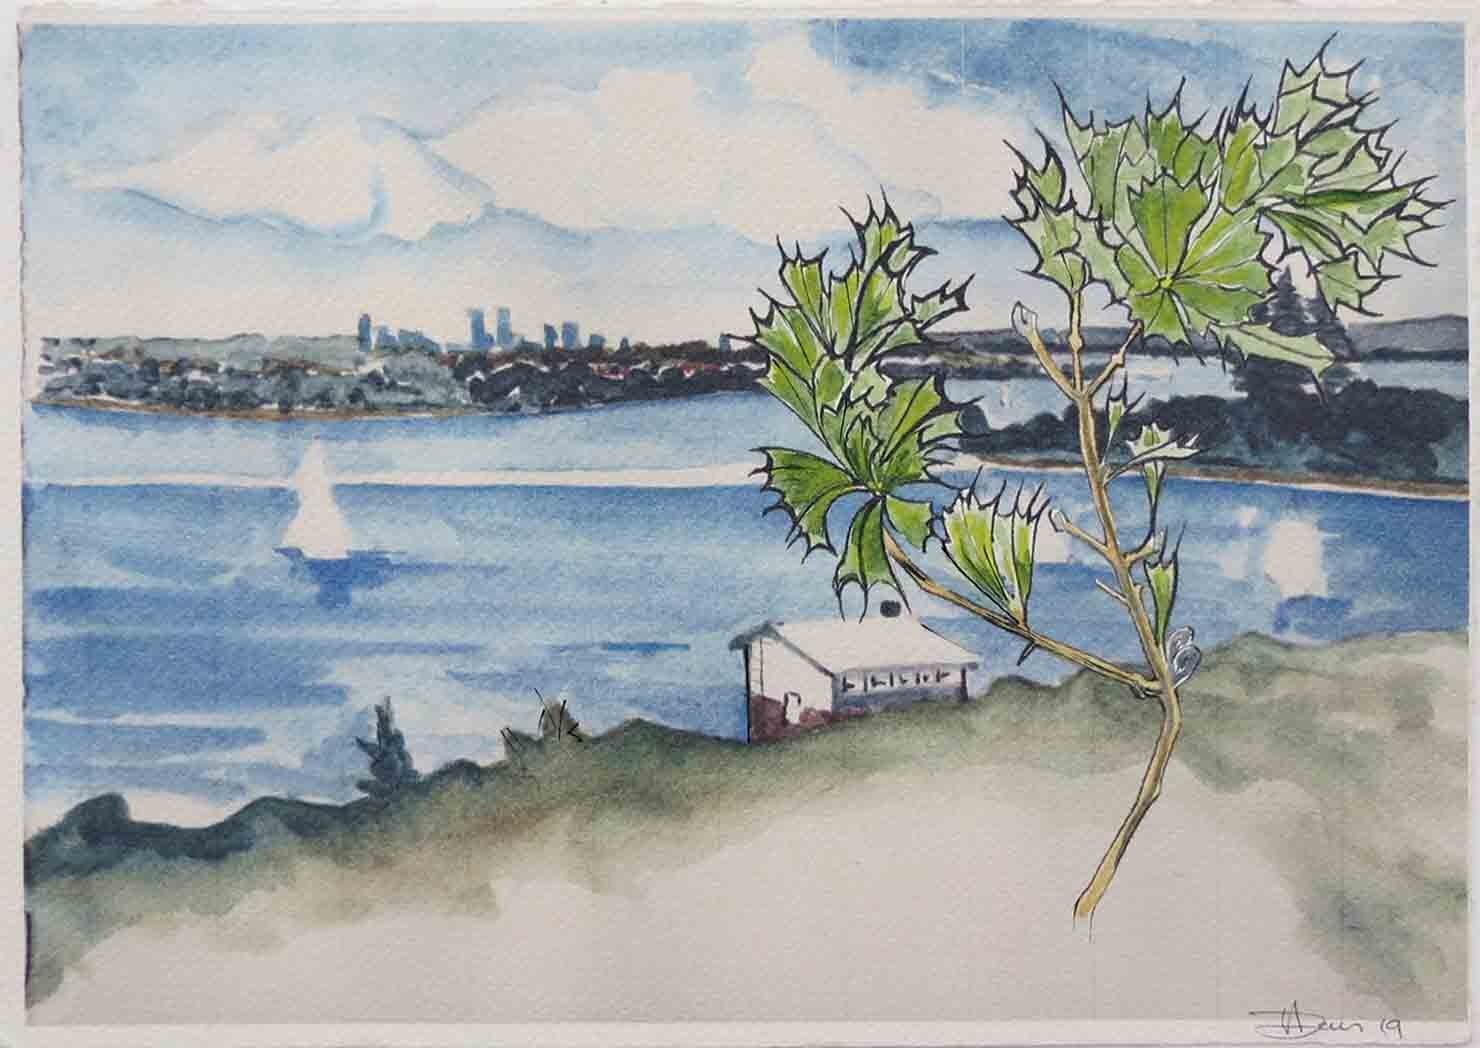 23. Tony Jones, Chidley Point, 2019, watercolour, pen, ink, modified digital prints, triptych 2 of 3, edition of 5, 29 x 21 cm each $225 set of 3, $75 each